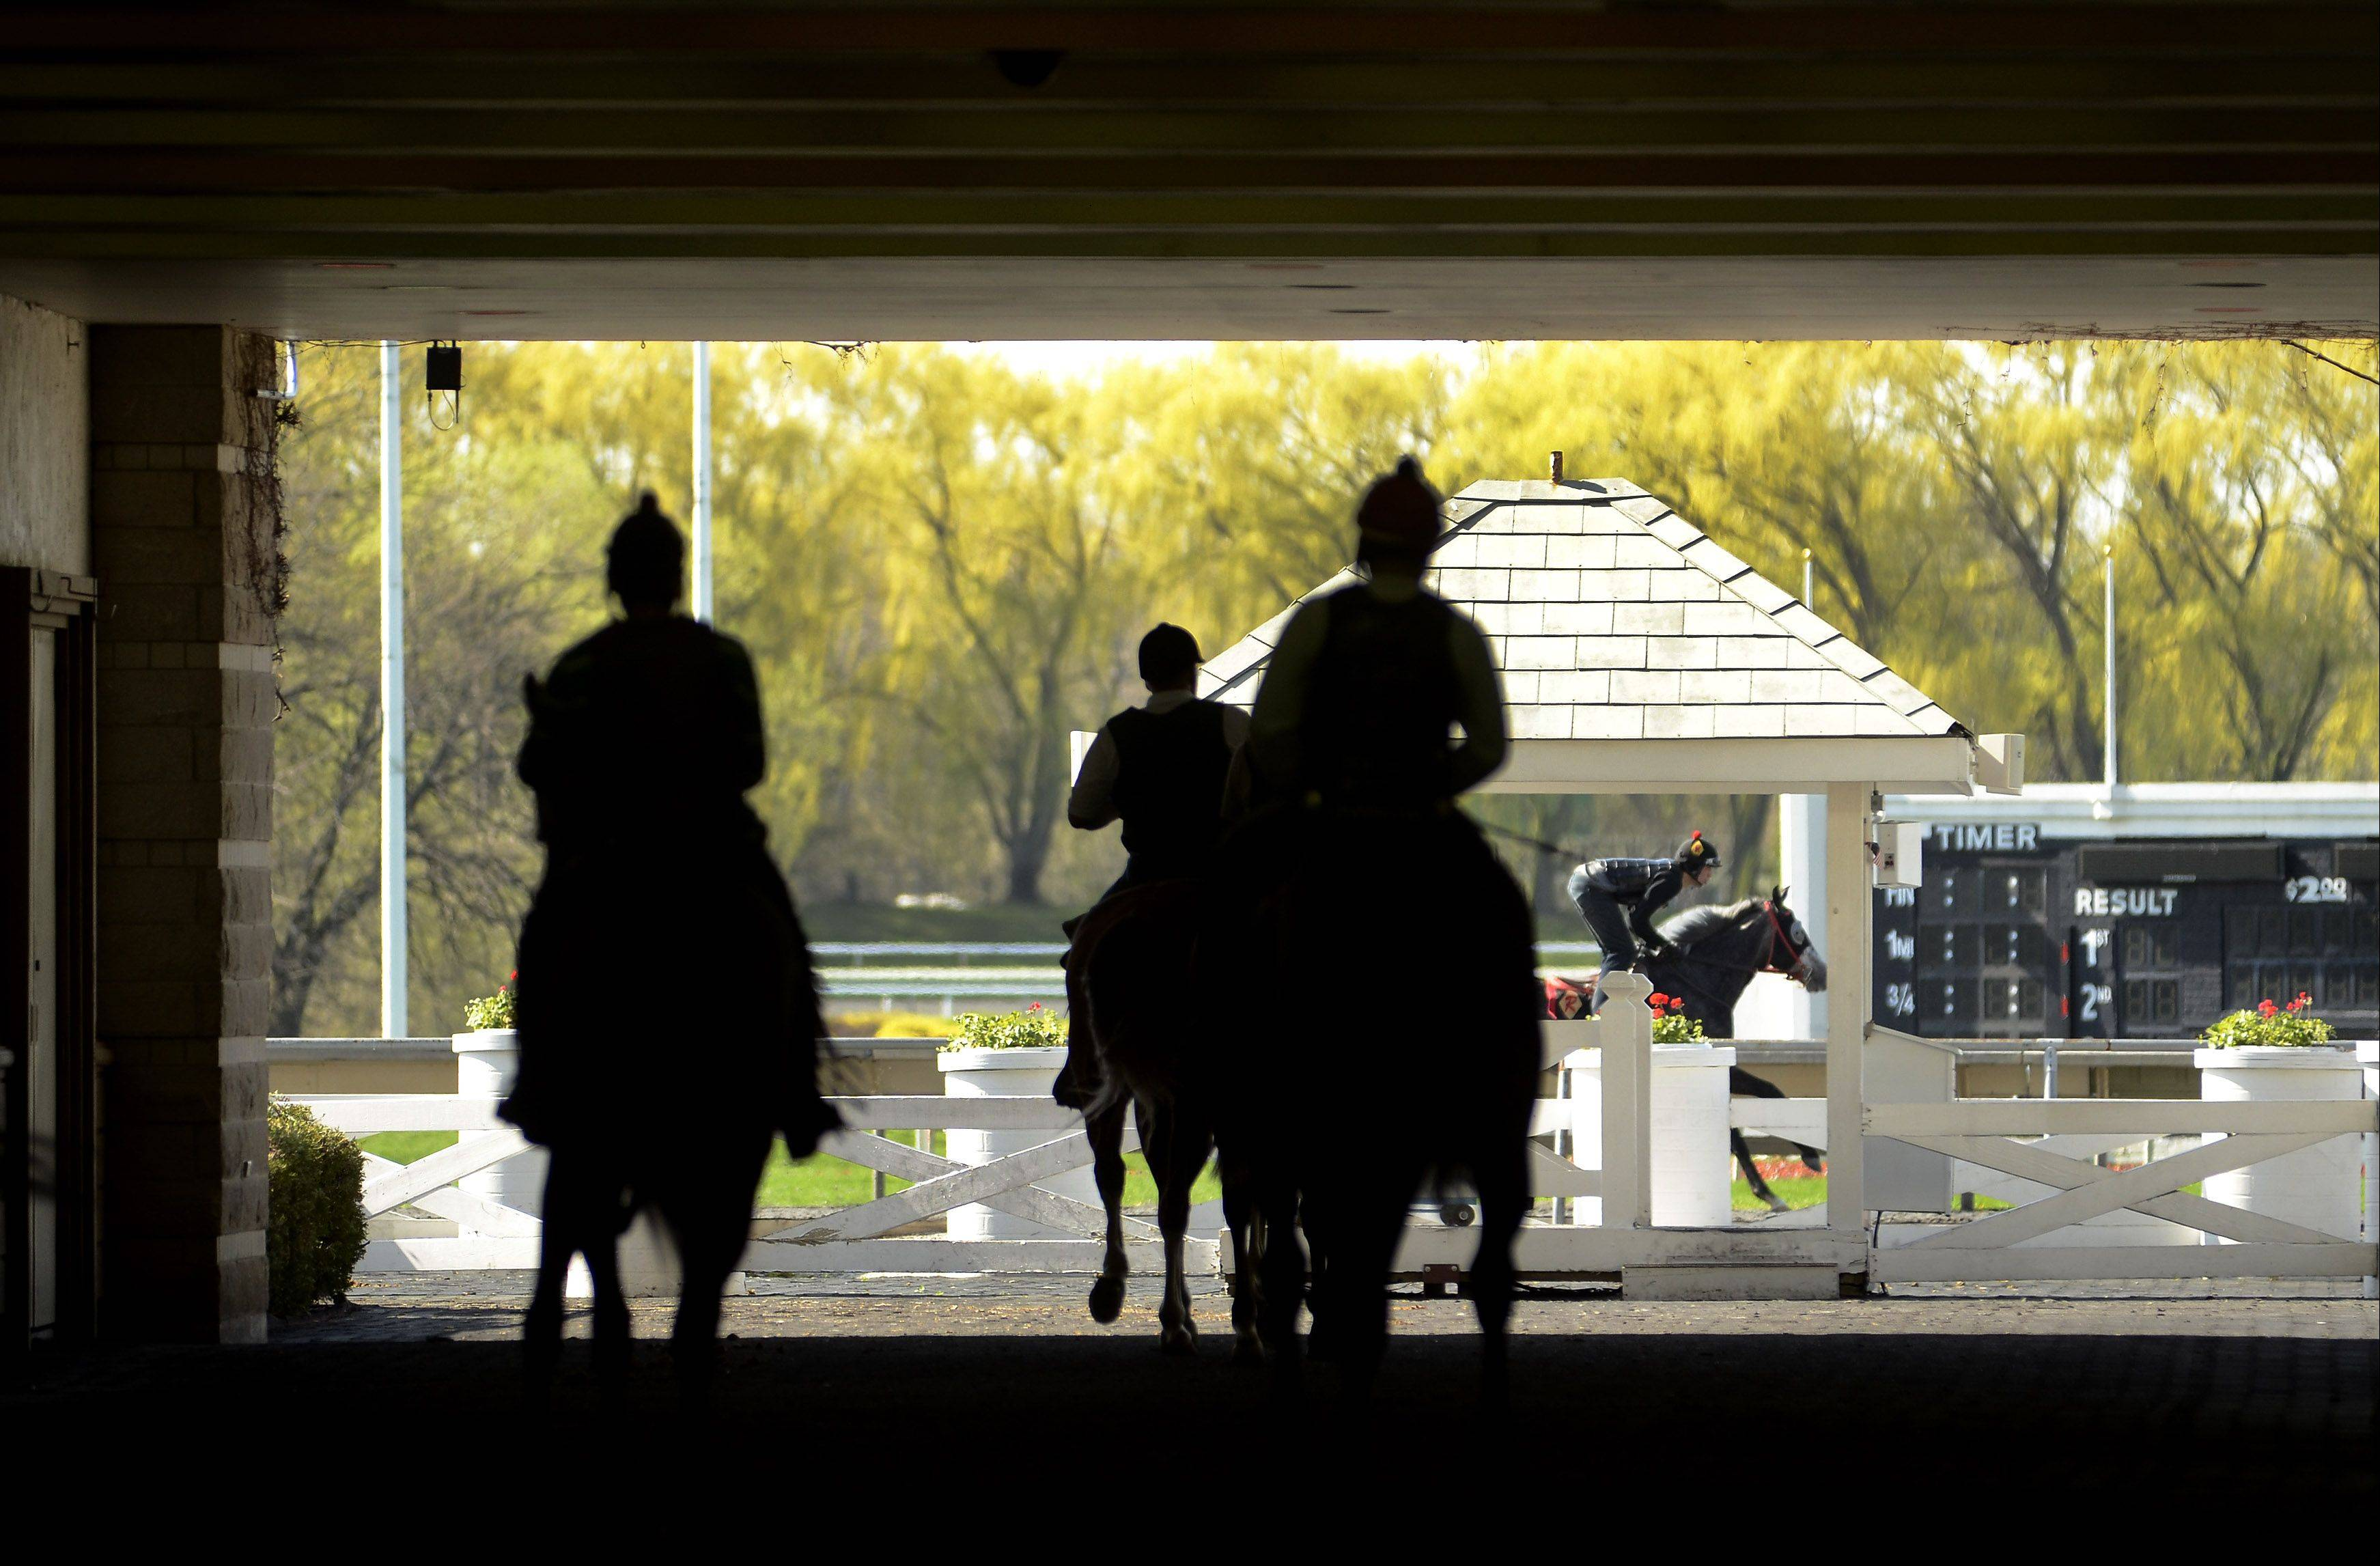 The horses, jockeys, trainers and day riders are back for another season at Arlington International Racecourse. Track officials will welcome back fans at 3 p.m. Friday for opening day, and Saturday's Derby Day program starts at 12:15 p.m.